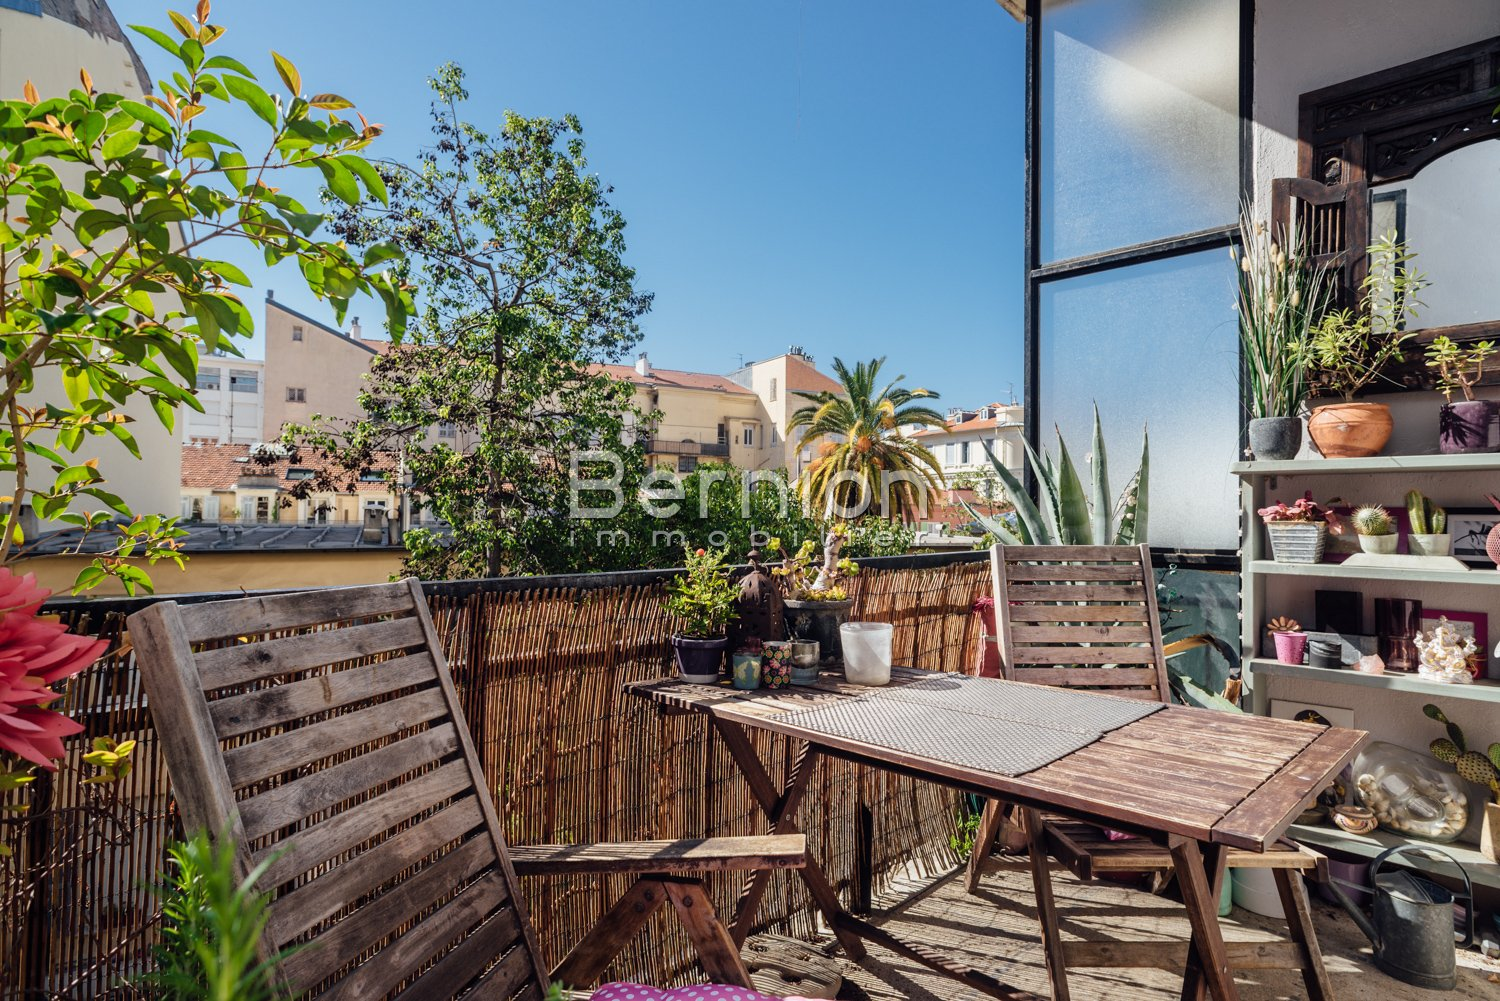 For Sale, Nice City Center Beautiful 72 sqm Apartment with terrace in Art Deco Building / photo 1